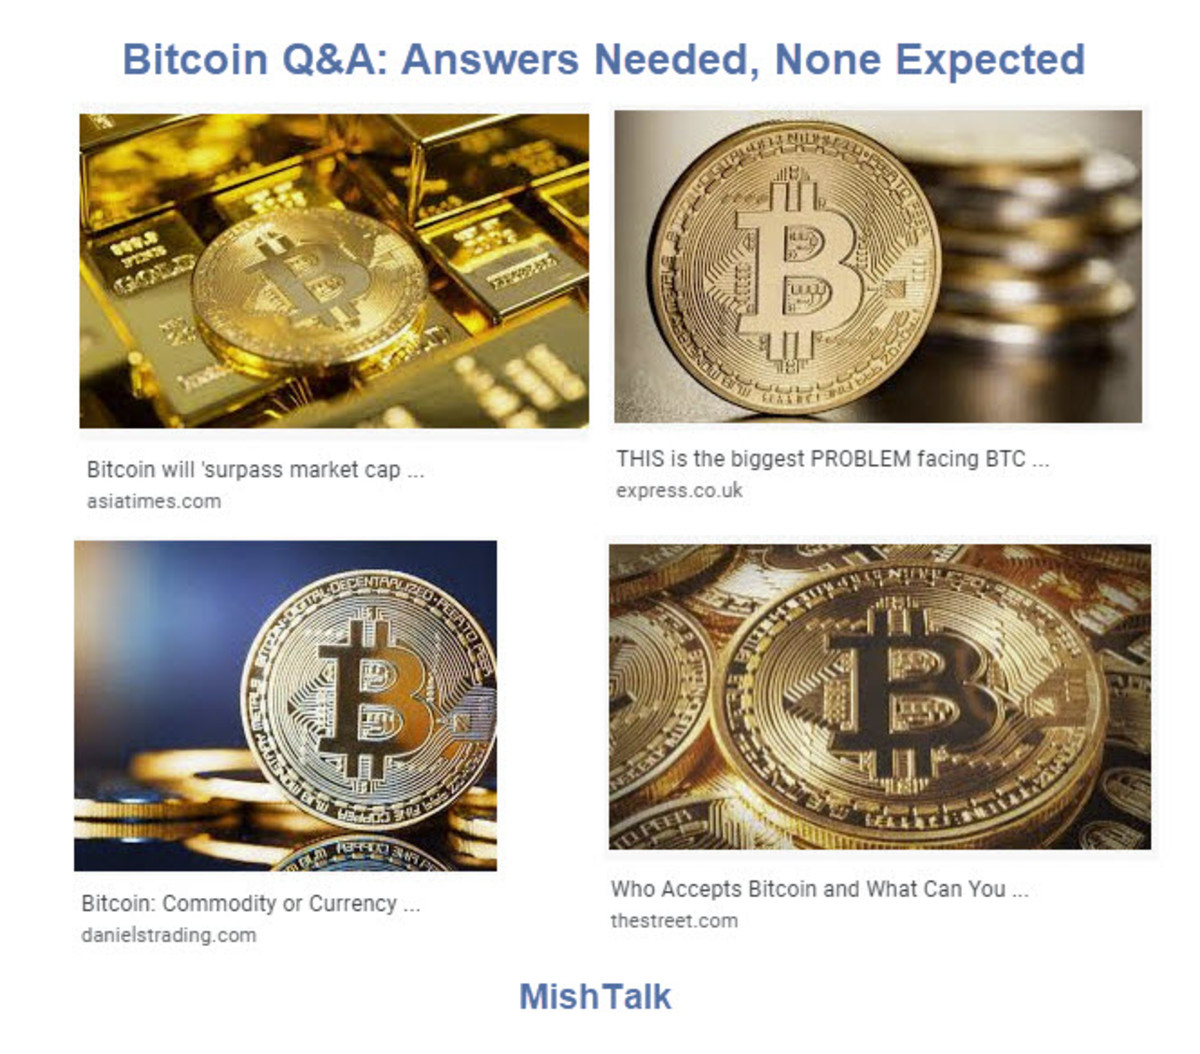 Bitcoin Q&A Answers Needed, None Expected